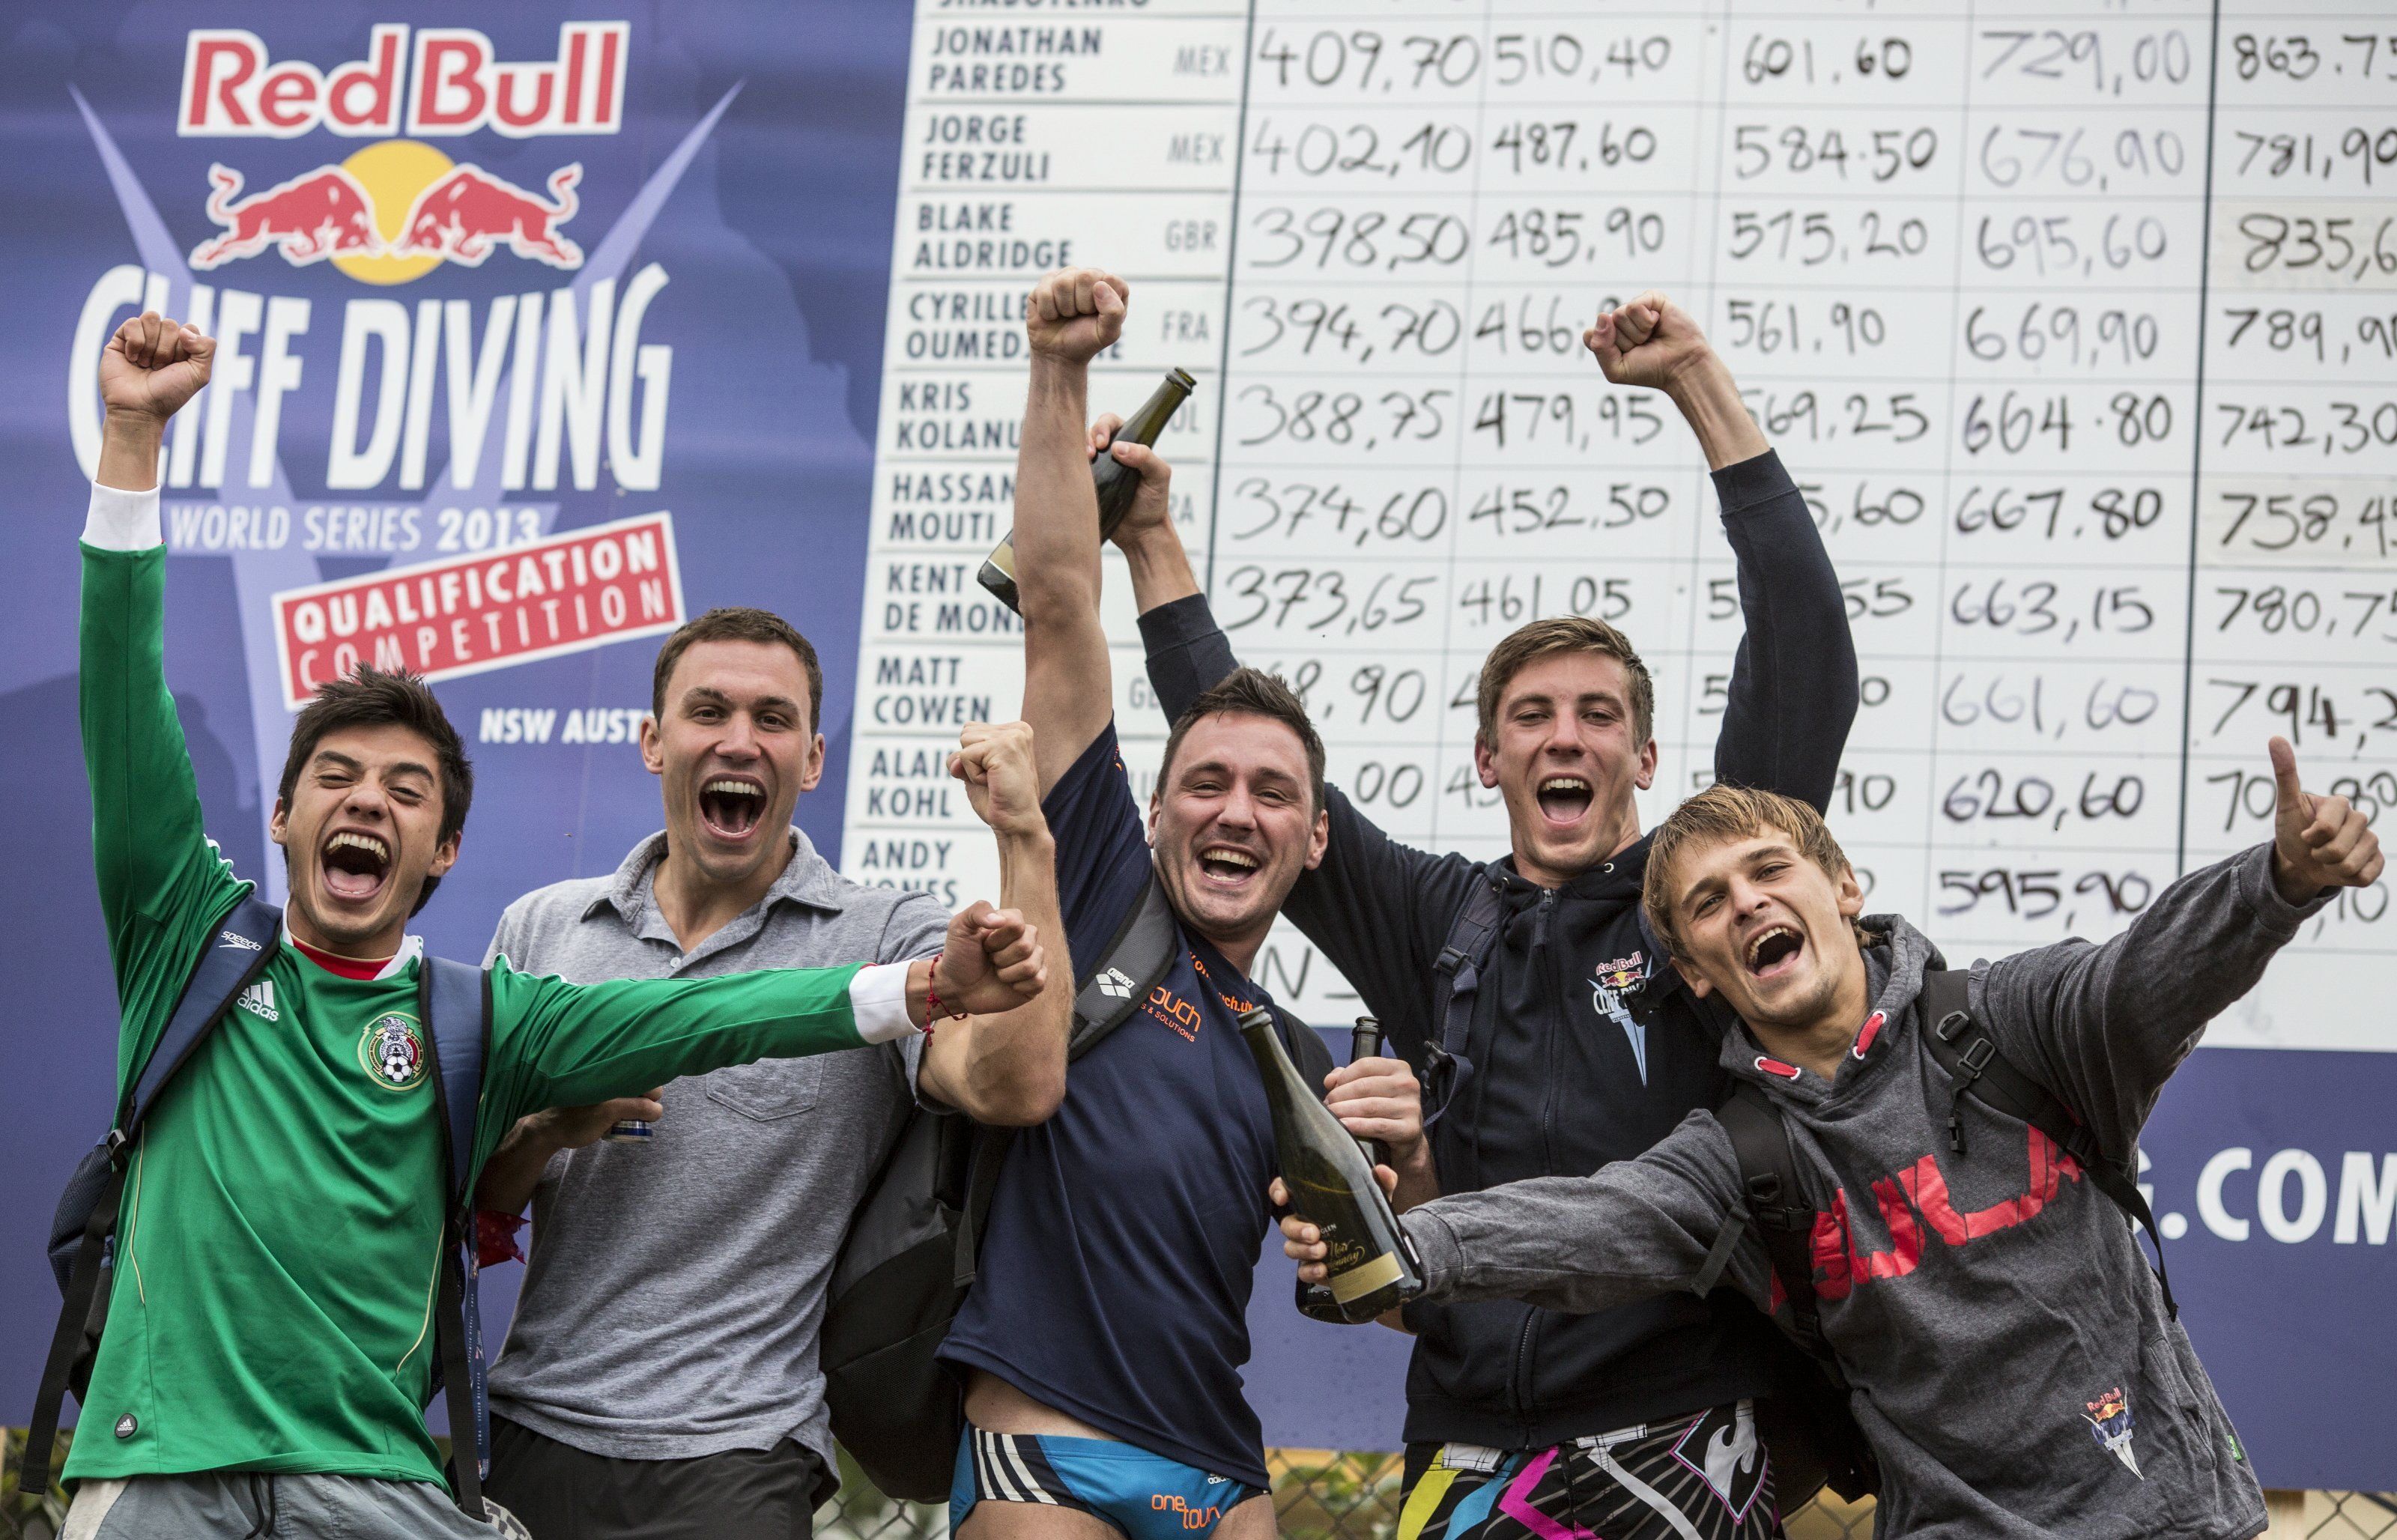 Kwalifikacje Red Bull Cliff Diving